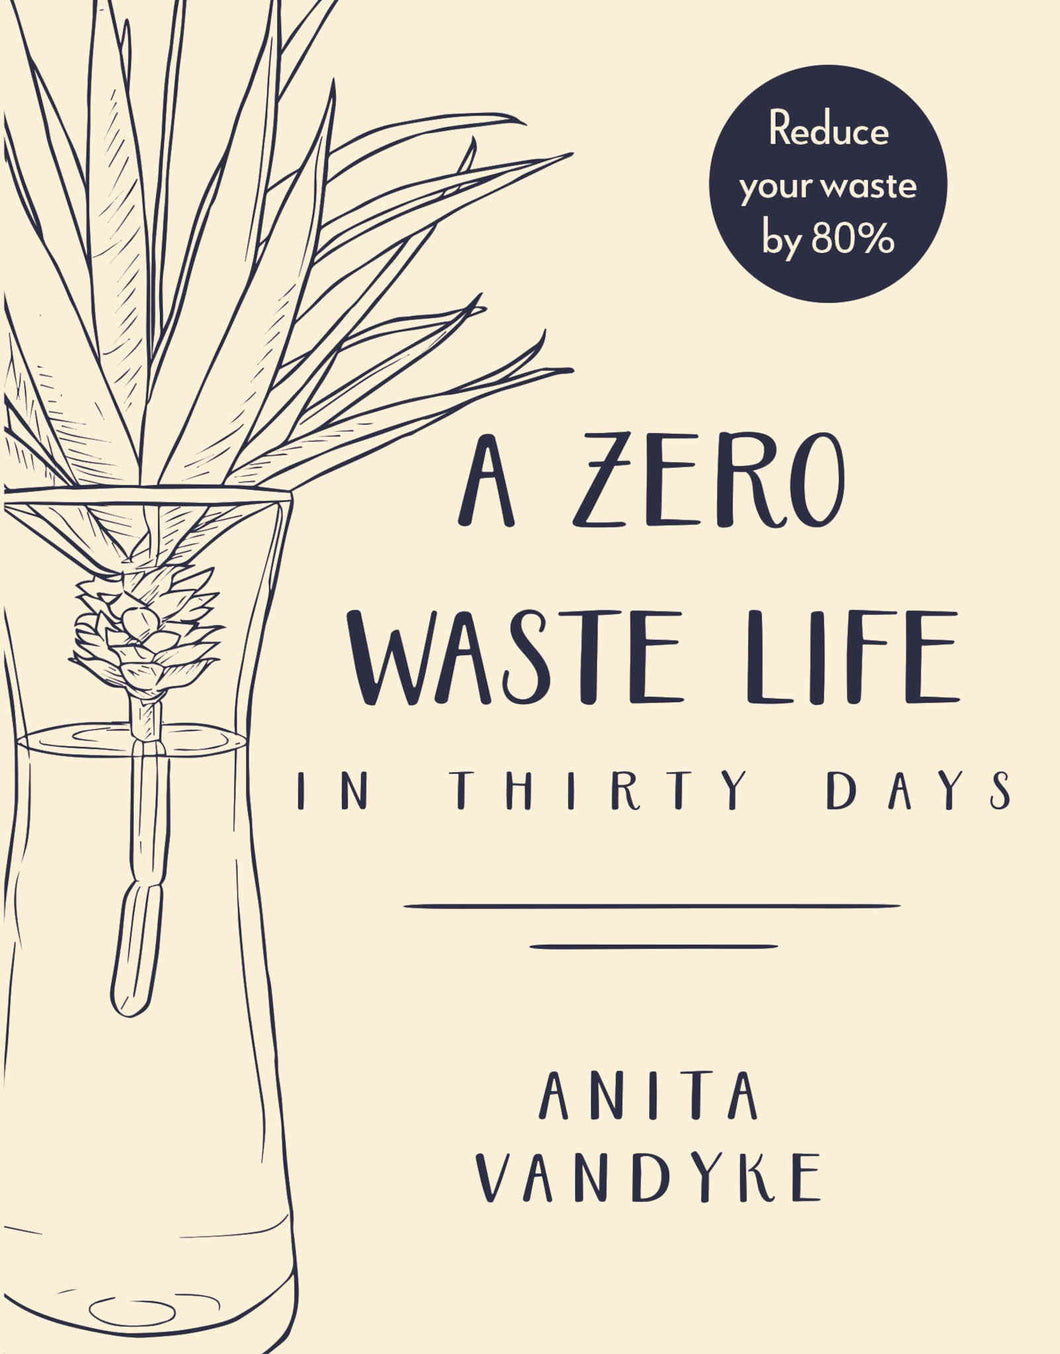 A Zero Waste Life in 30 Days by Anita Vandyke